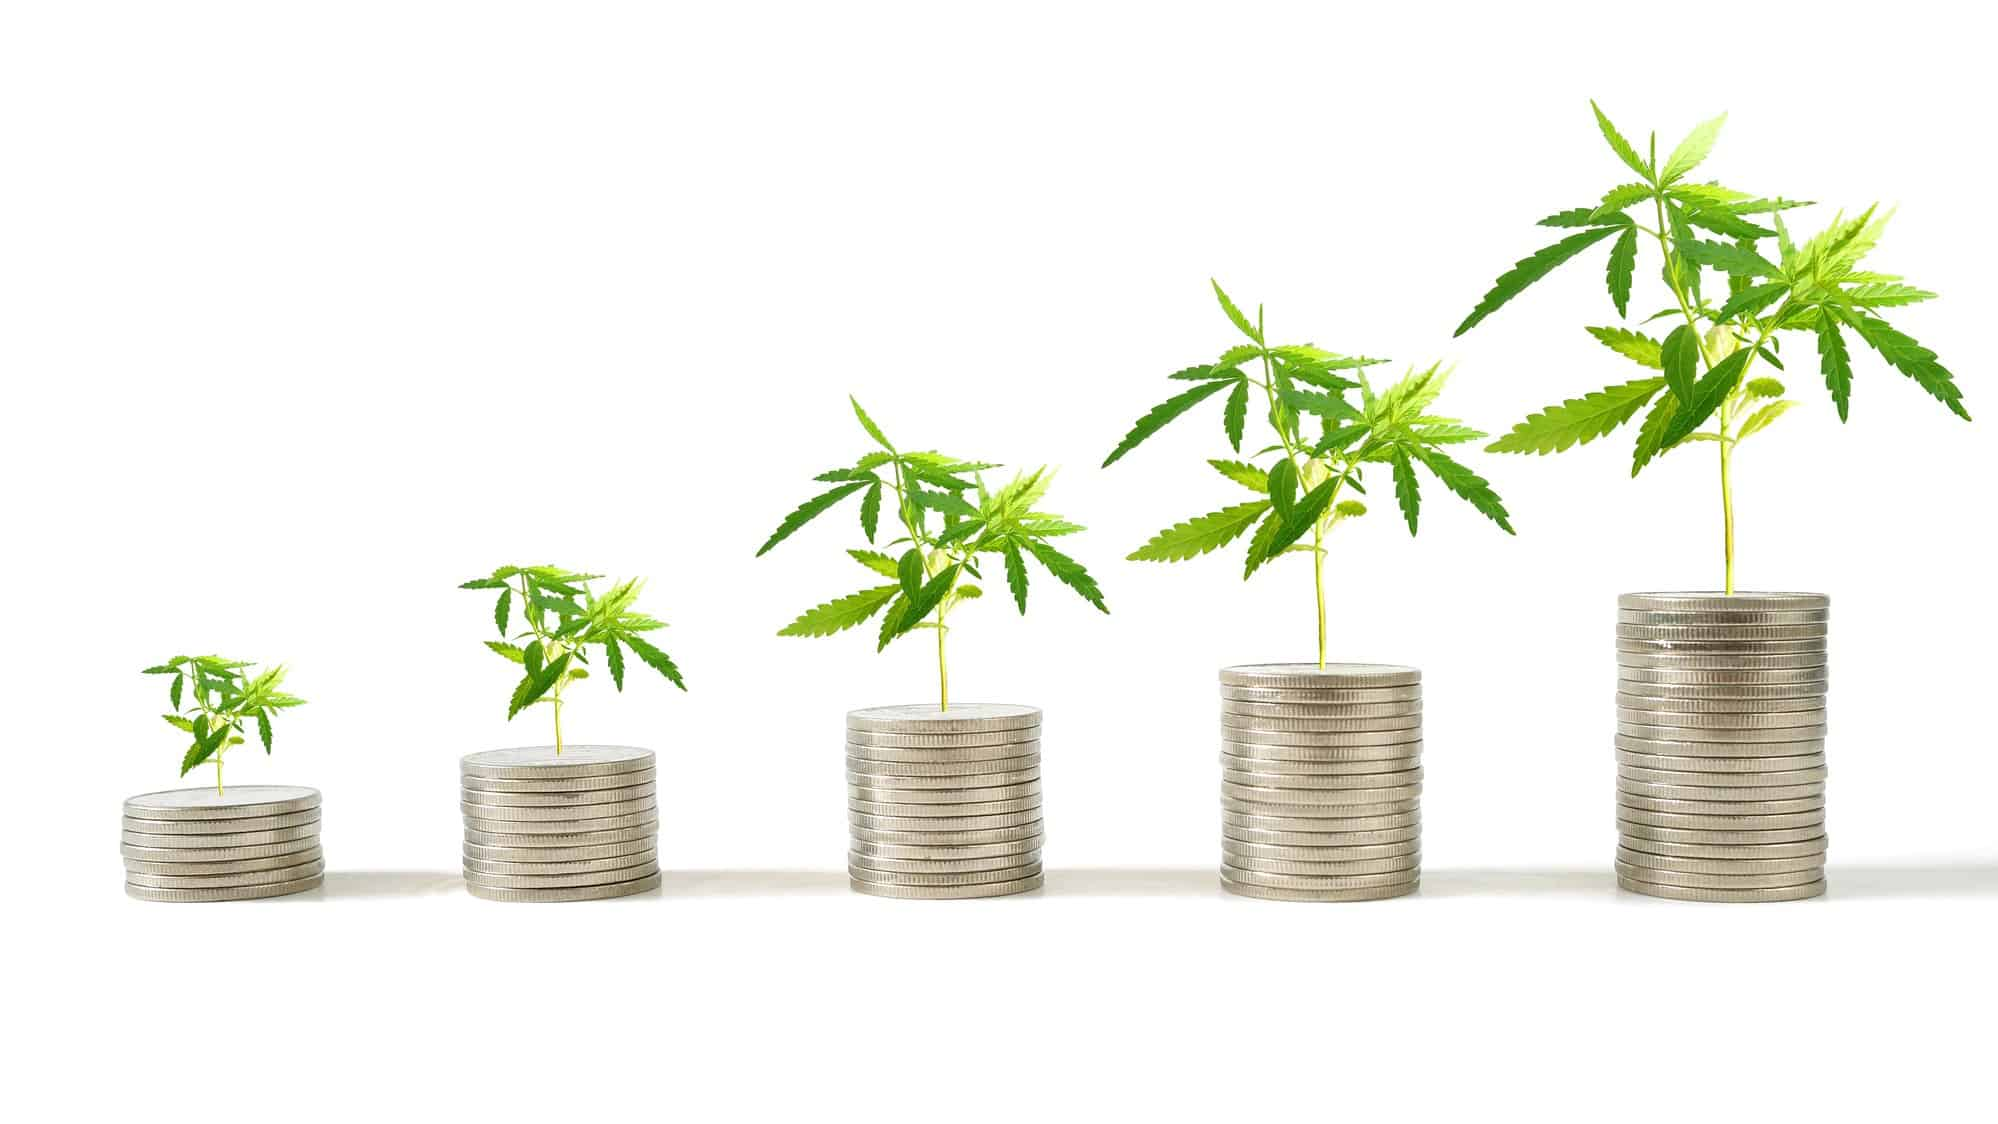 increasing cannabis asx share price represented by growing coin piles with cannabis plants on top